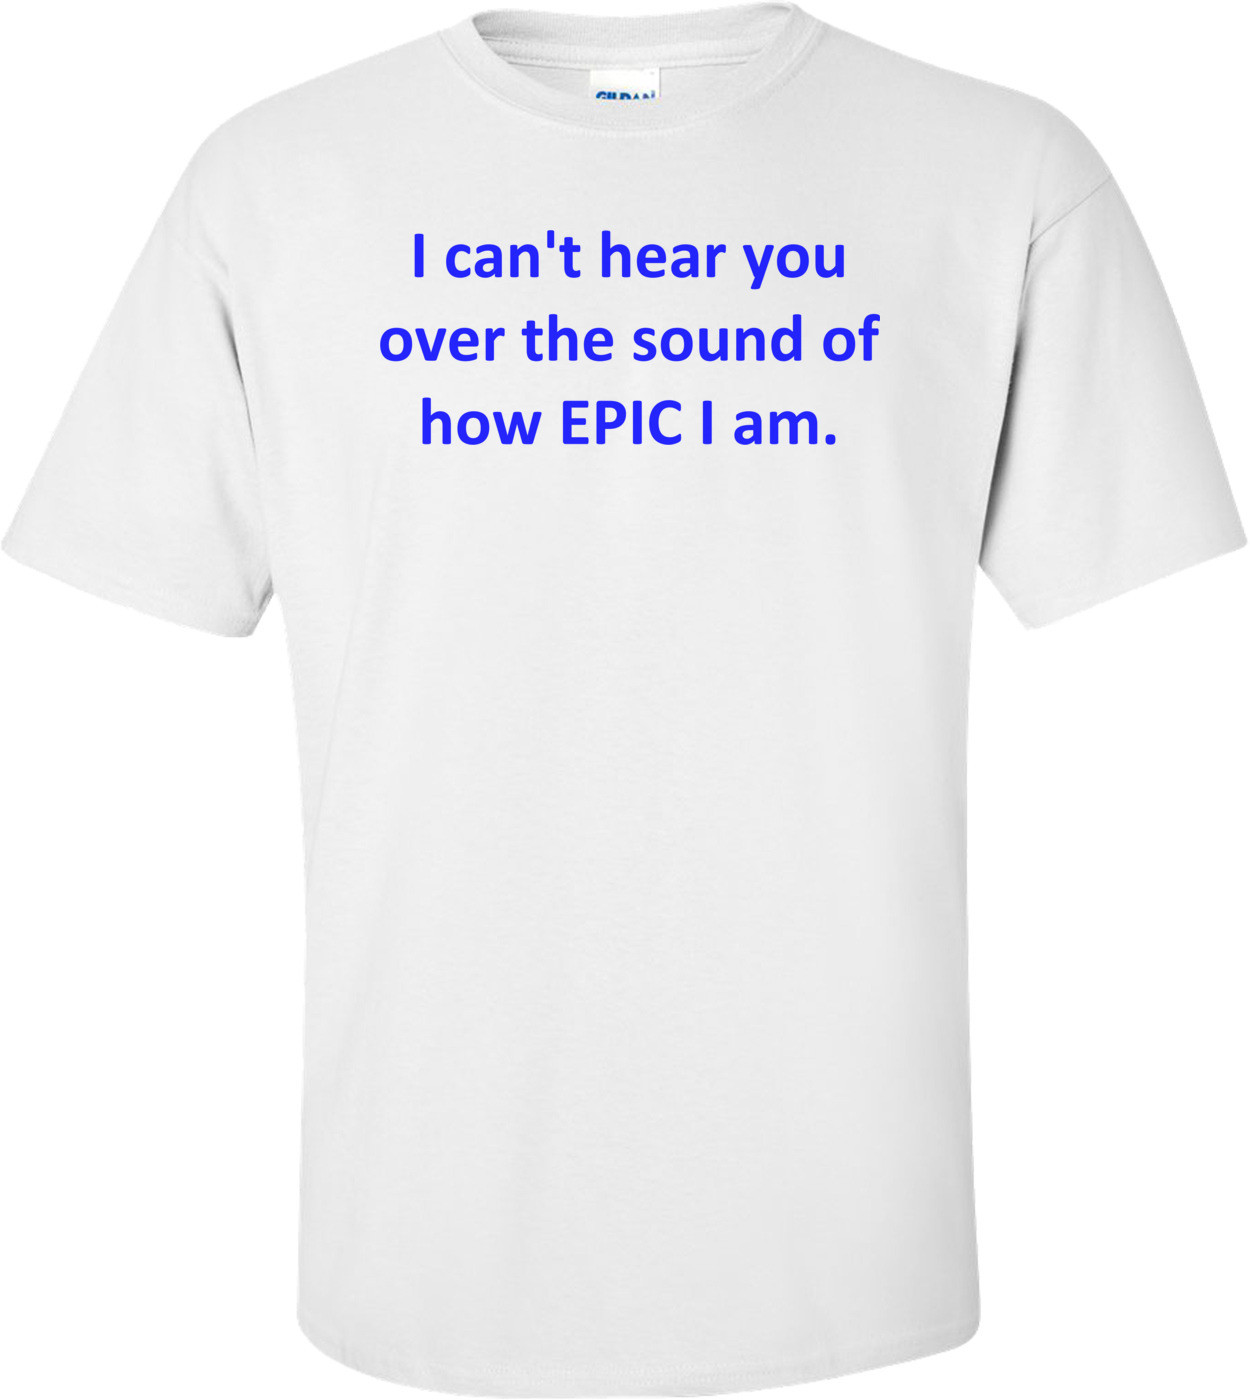 I can't hear you over the sound of how EPIC I am. Shirt